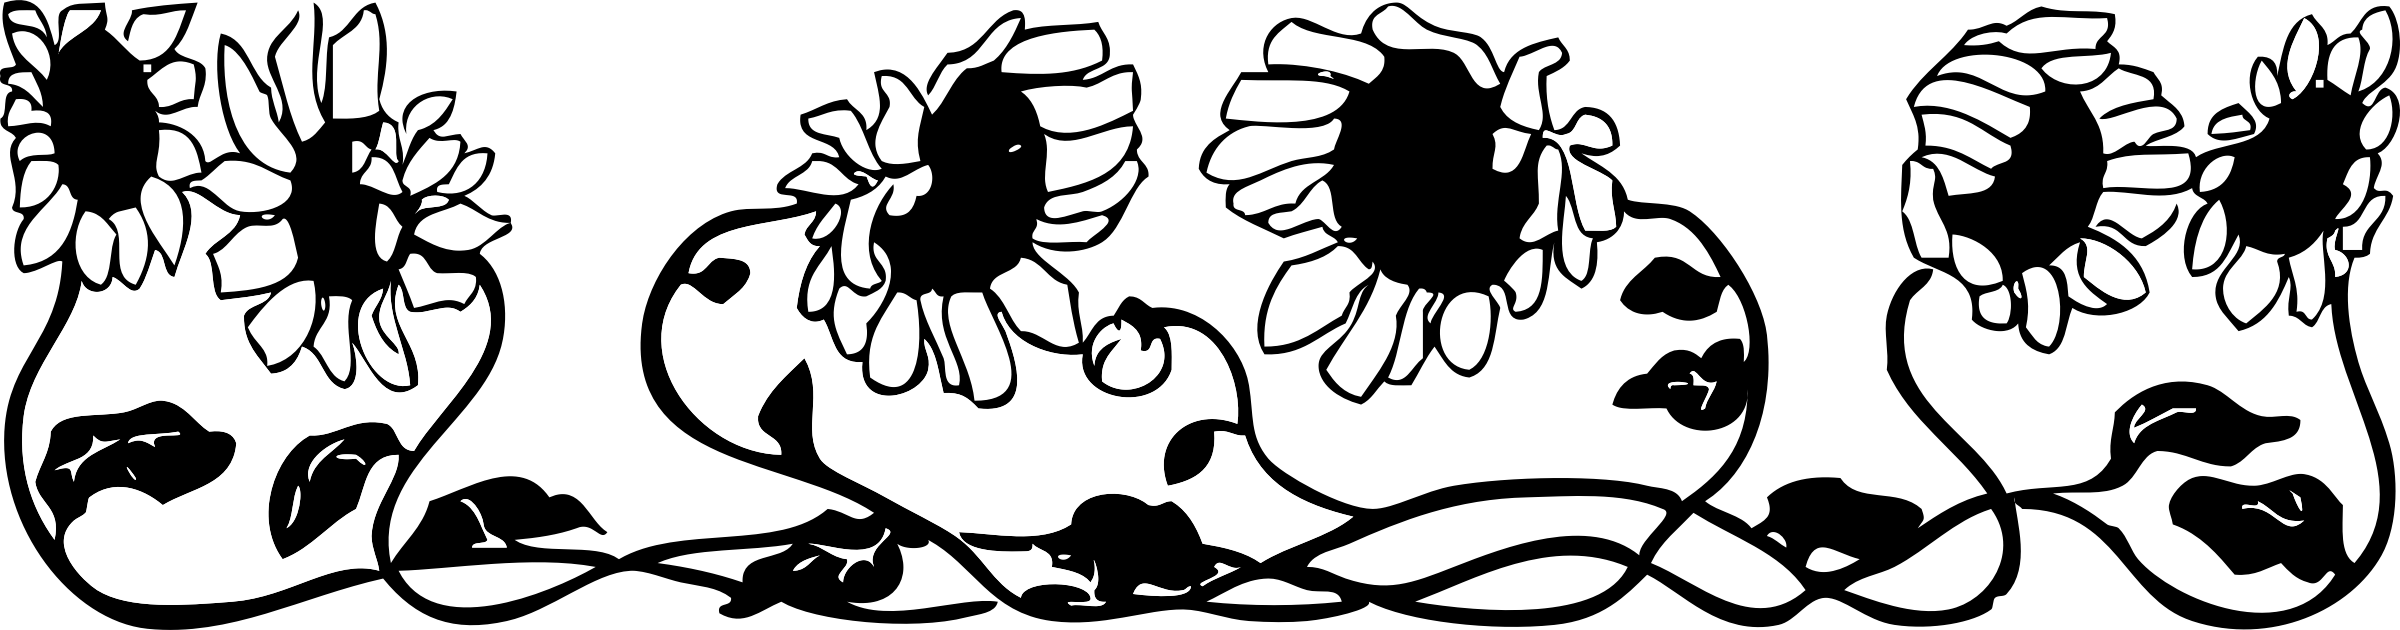 Flower border clipart black and white clip art free stock sunflower border Icons PNG - Free PNG and Icons Downloads clip art free stock